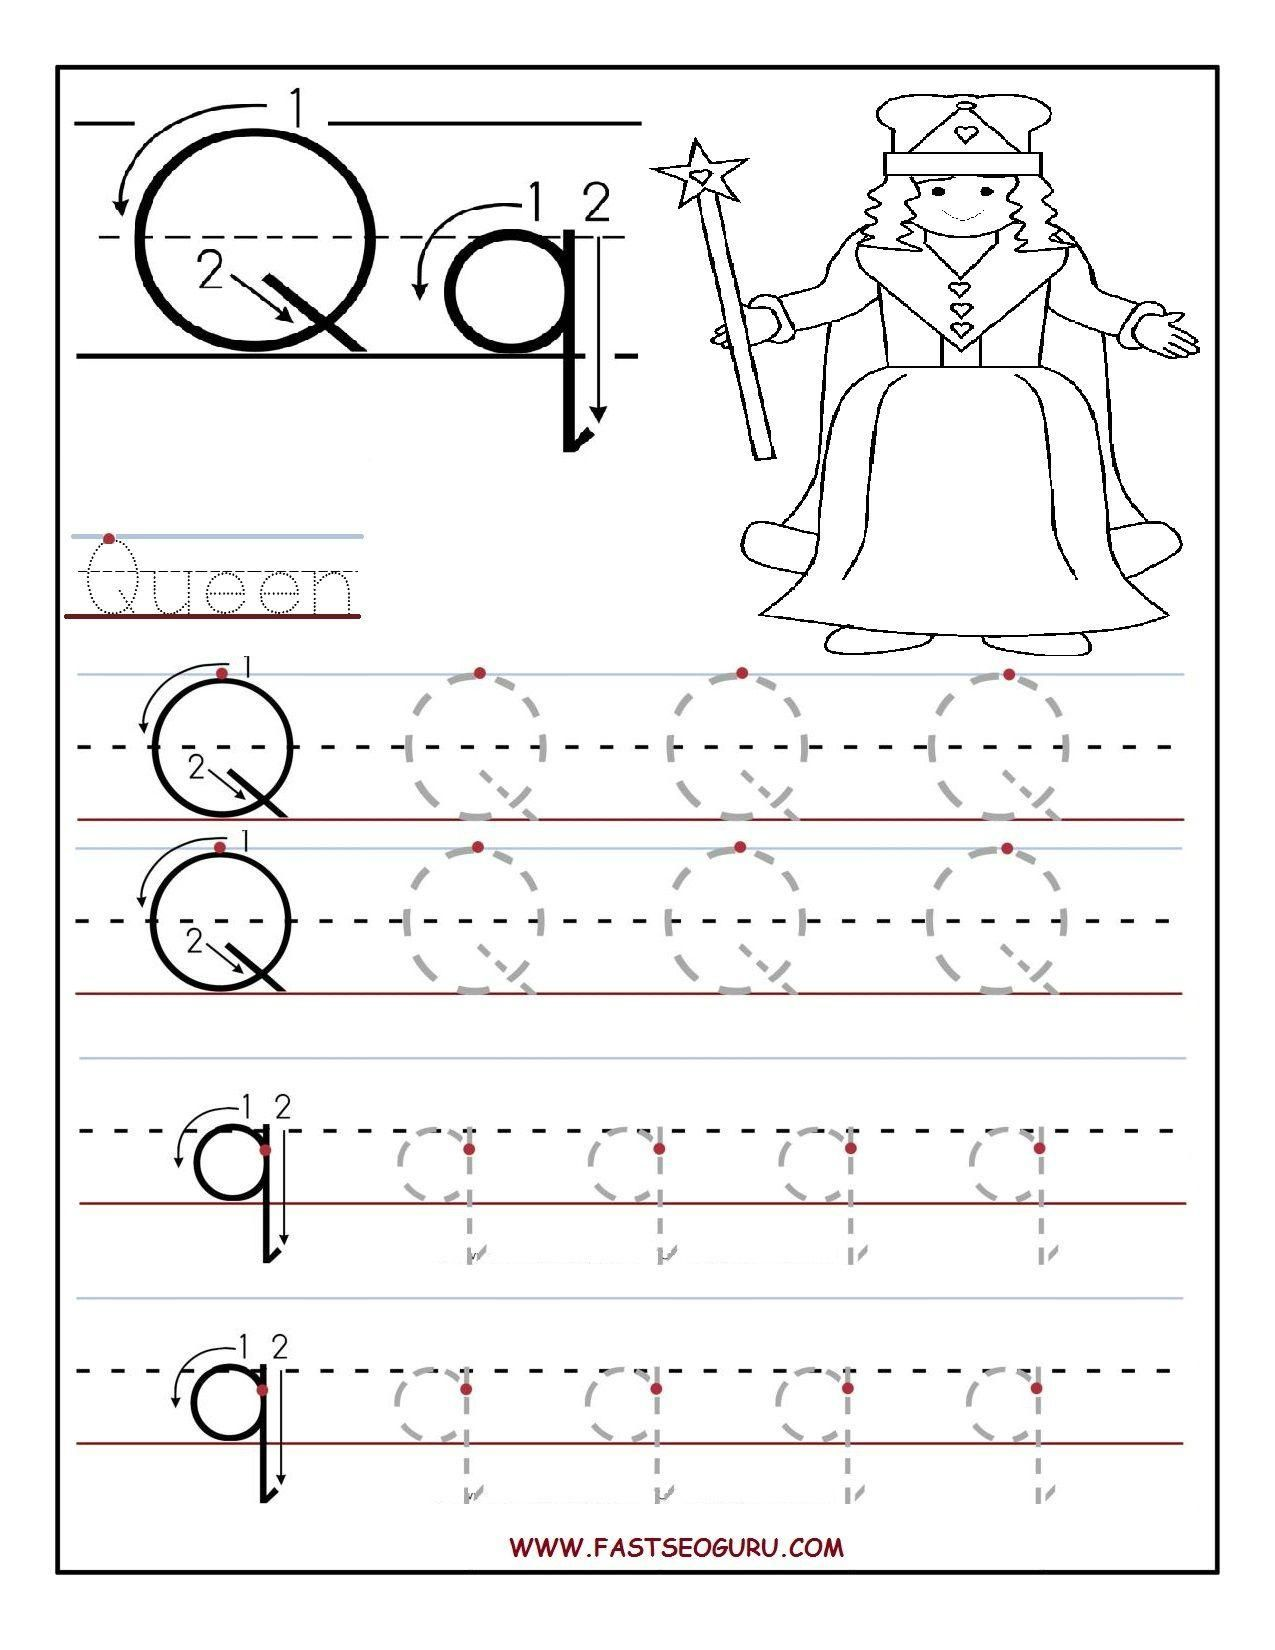 Printable Letter A Worksheets In